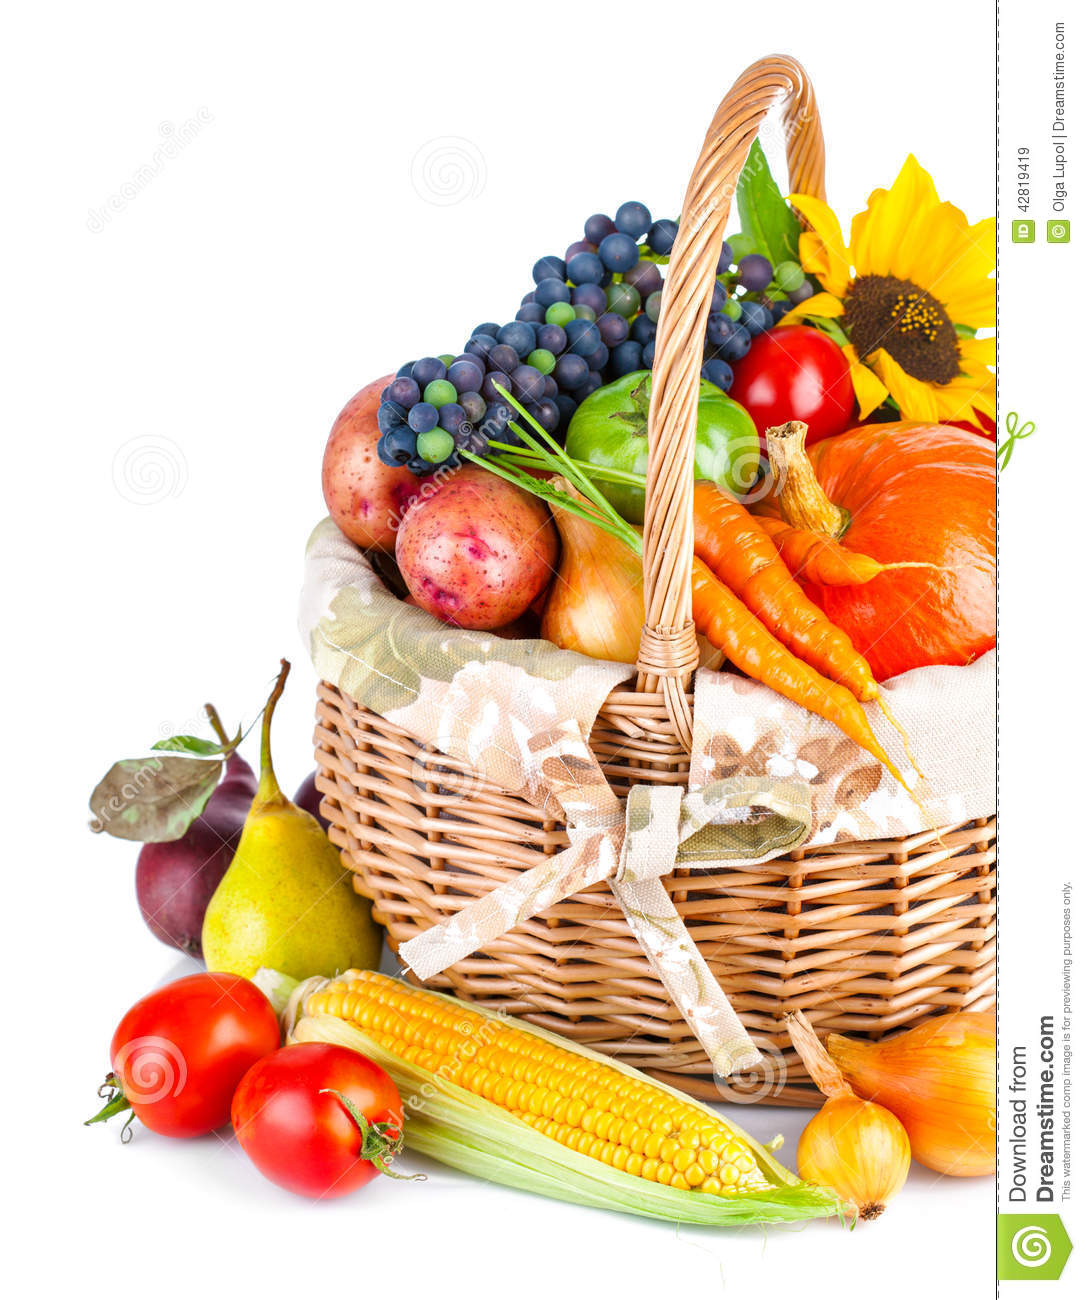 Autumnal Harvest Vegetables And Fruits In Basket Stock ...